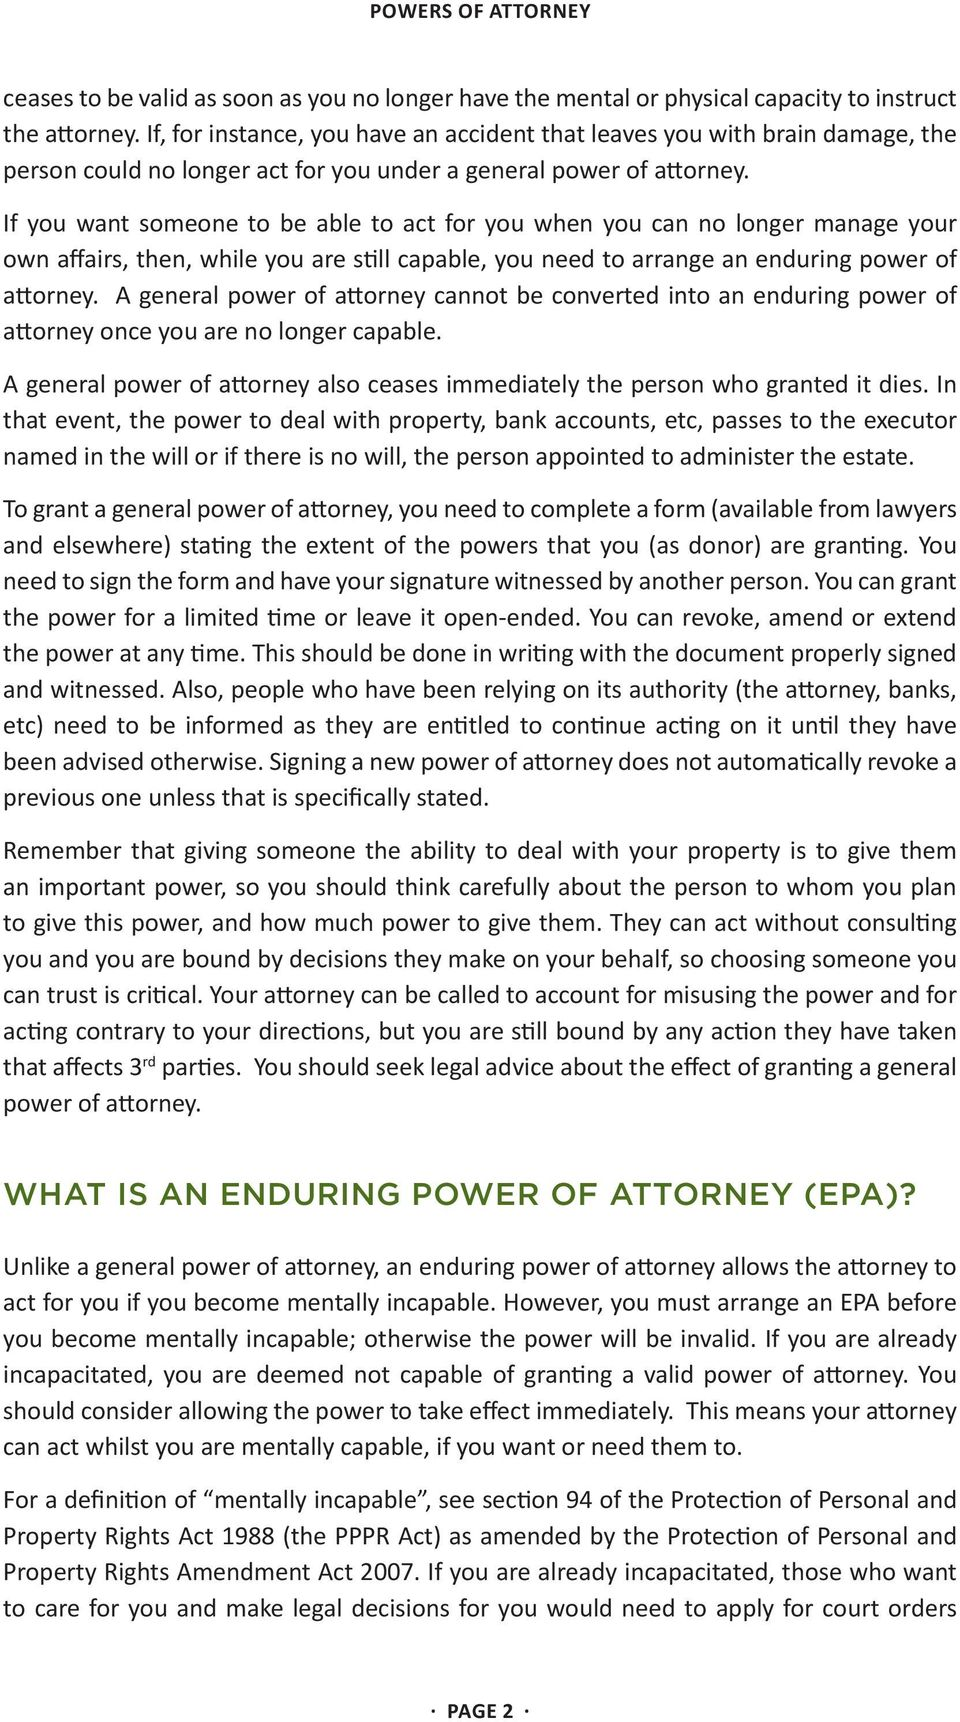 If you want someone to be able to act for you when you can no longer manage your own affairs, then, while you are still capable, you need to arrange an enduring power of attorney.